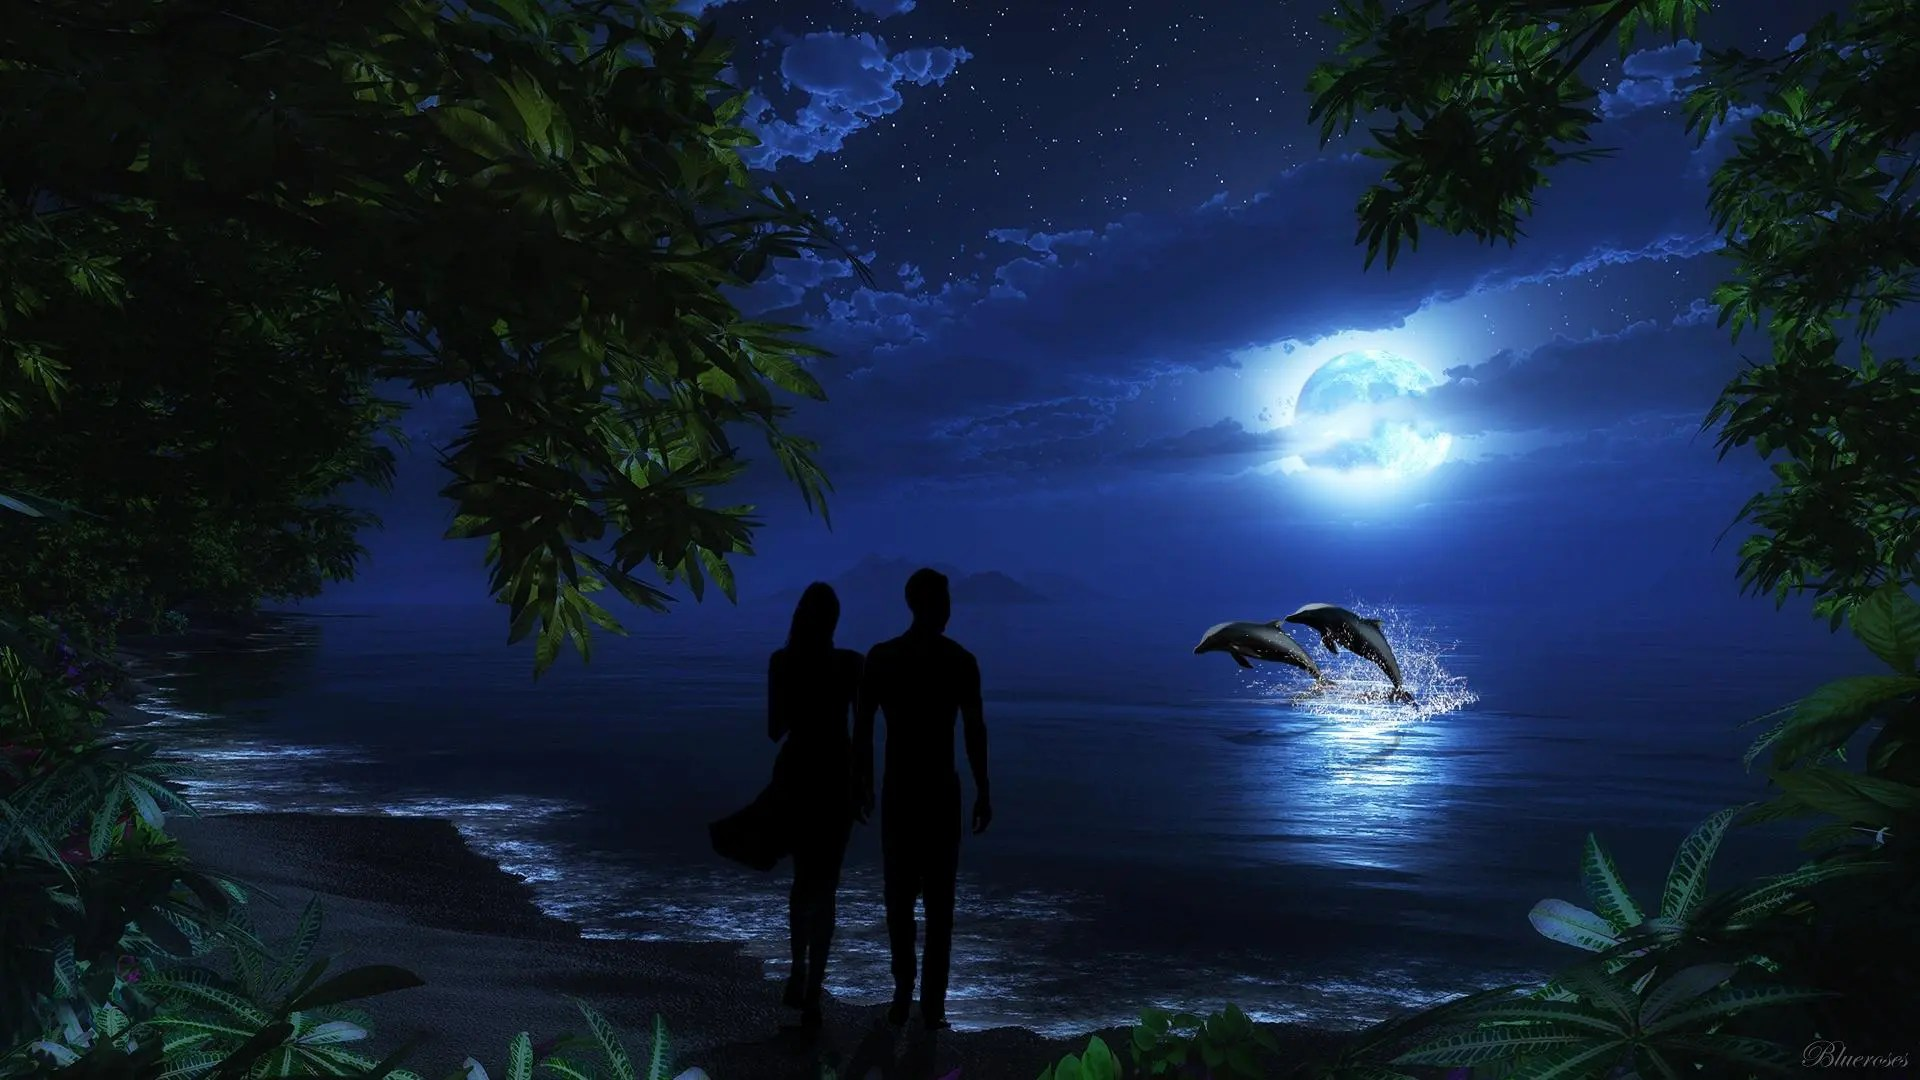 3d Wallpaper Under The Sea Full Moon October 2015 Dreams Come True Astrology King